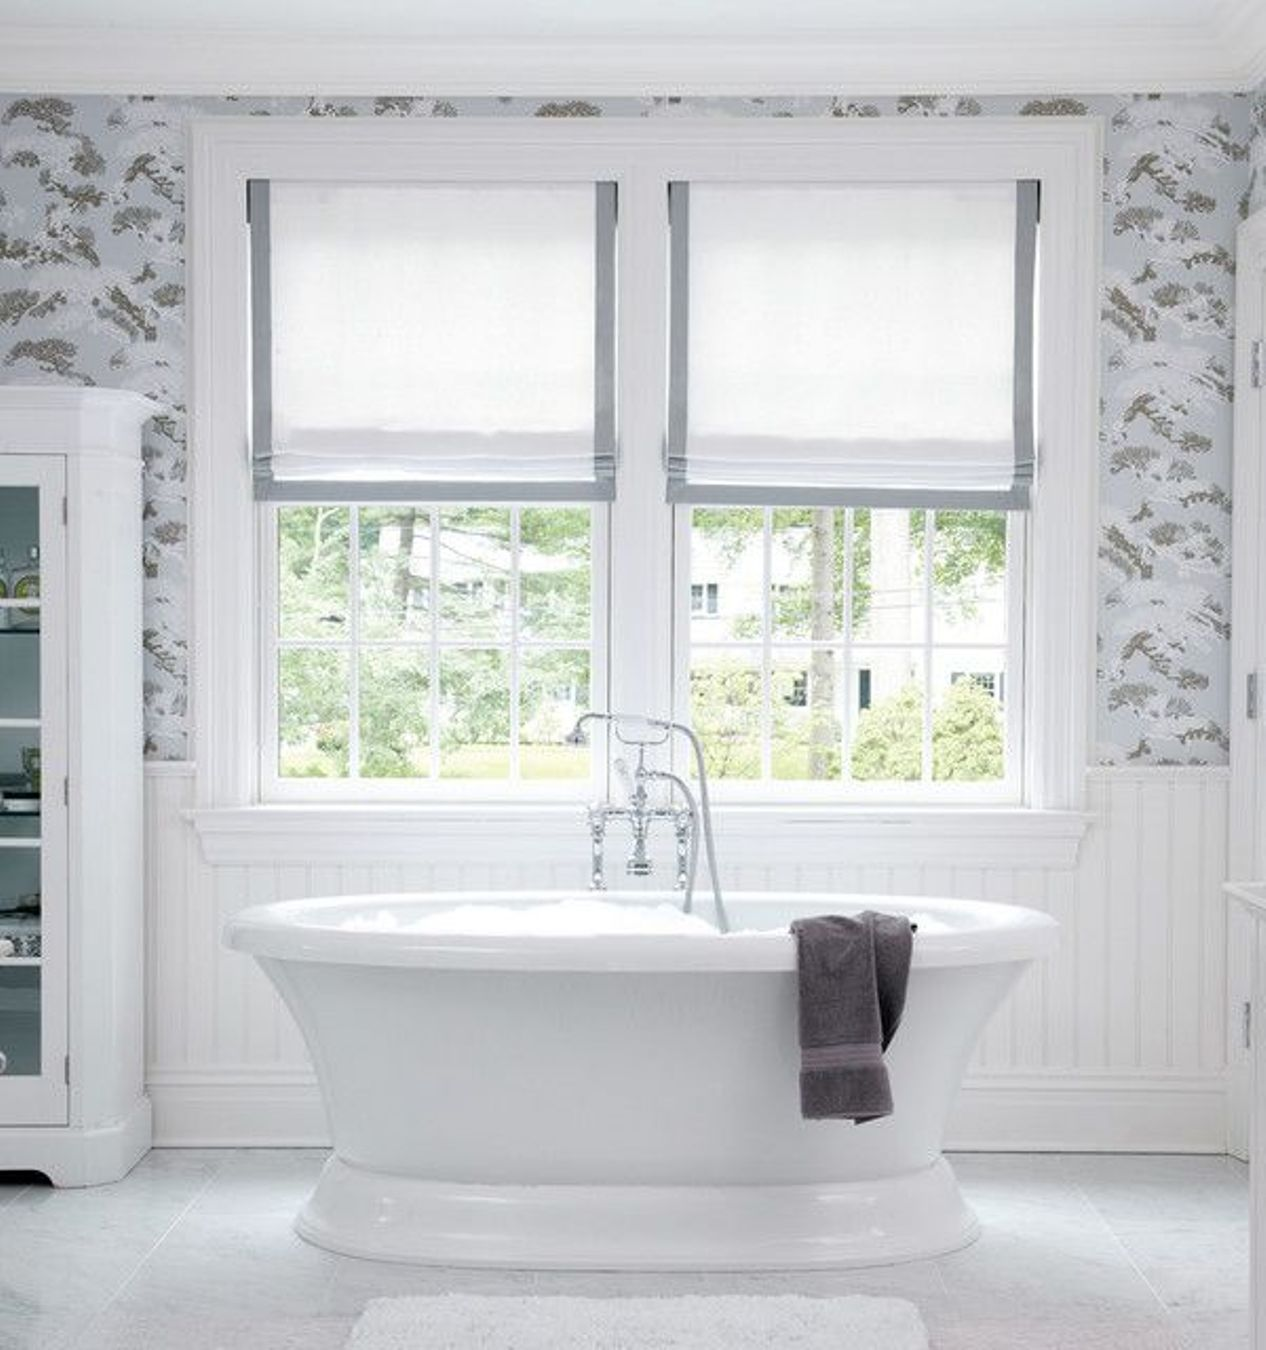 Small bathroom window curtains a creative mom for What type of blinds for bathroom